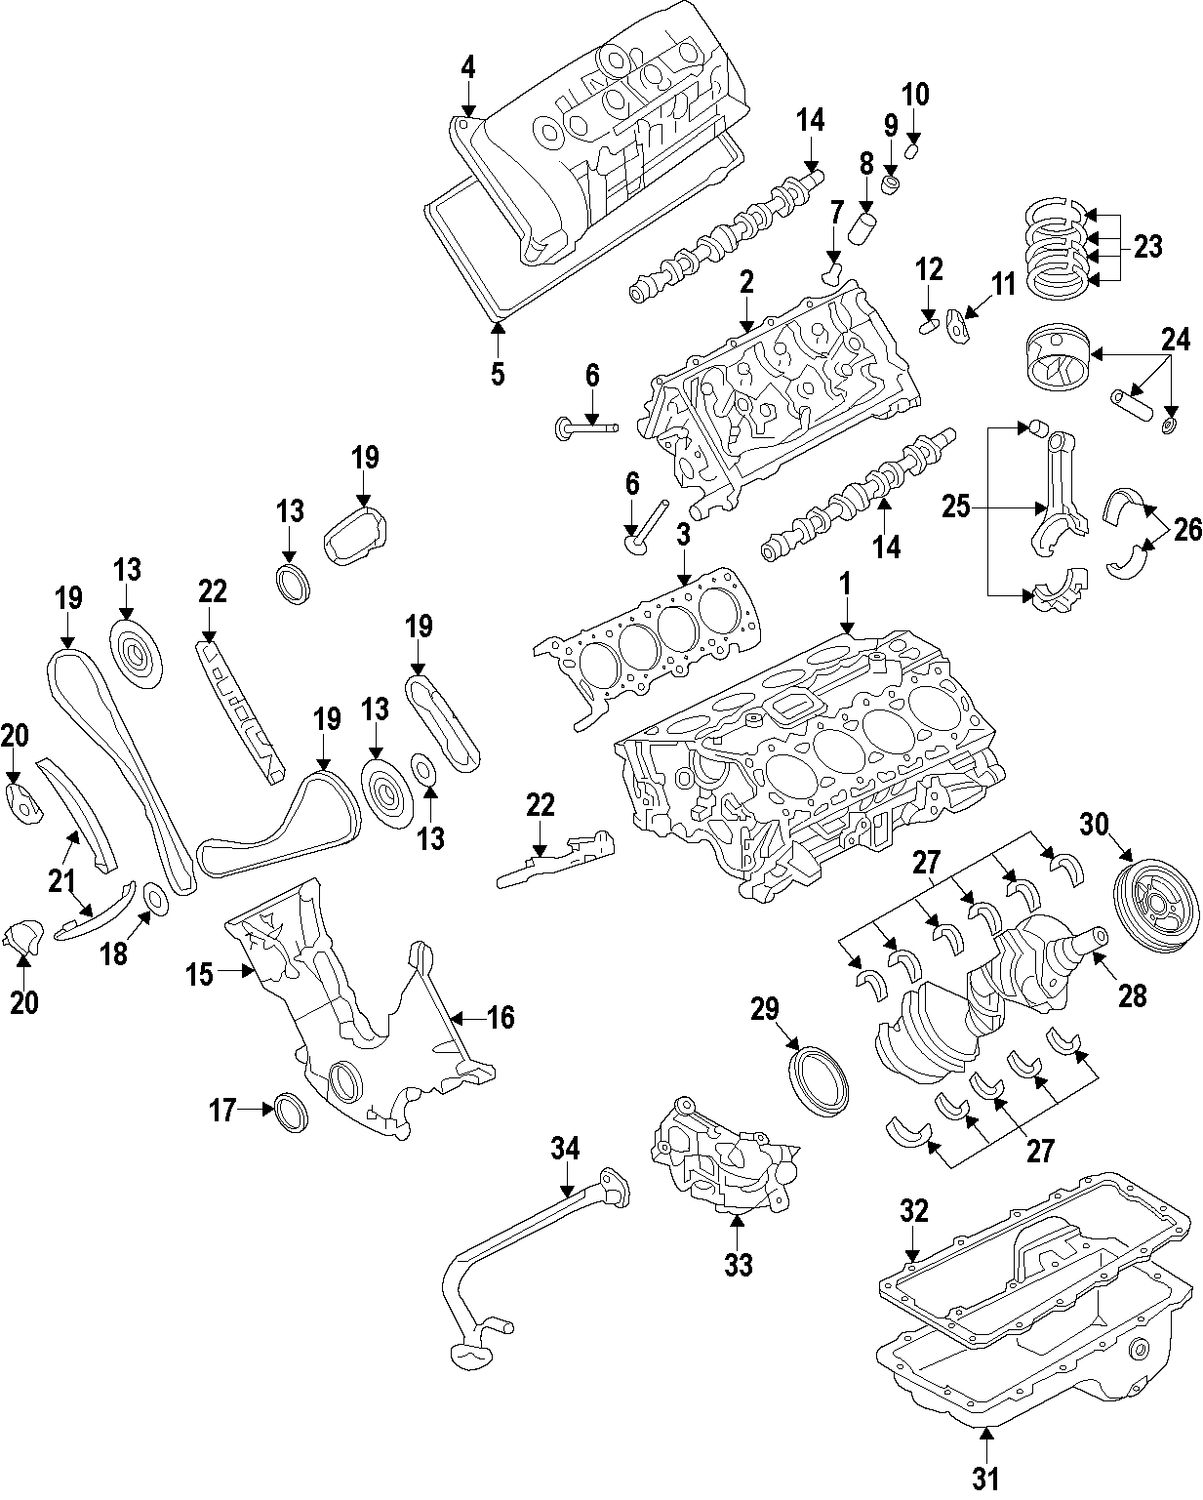 2014 ford mustang parts diagram  u2022 wiring diagram for free